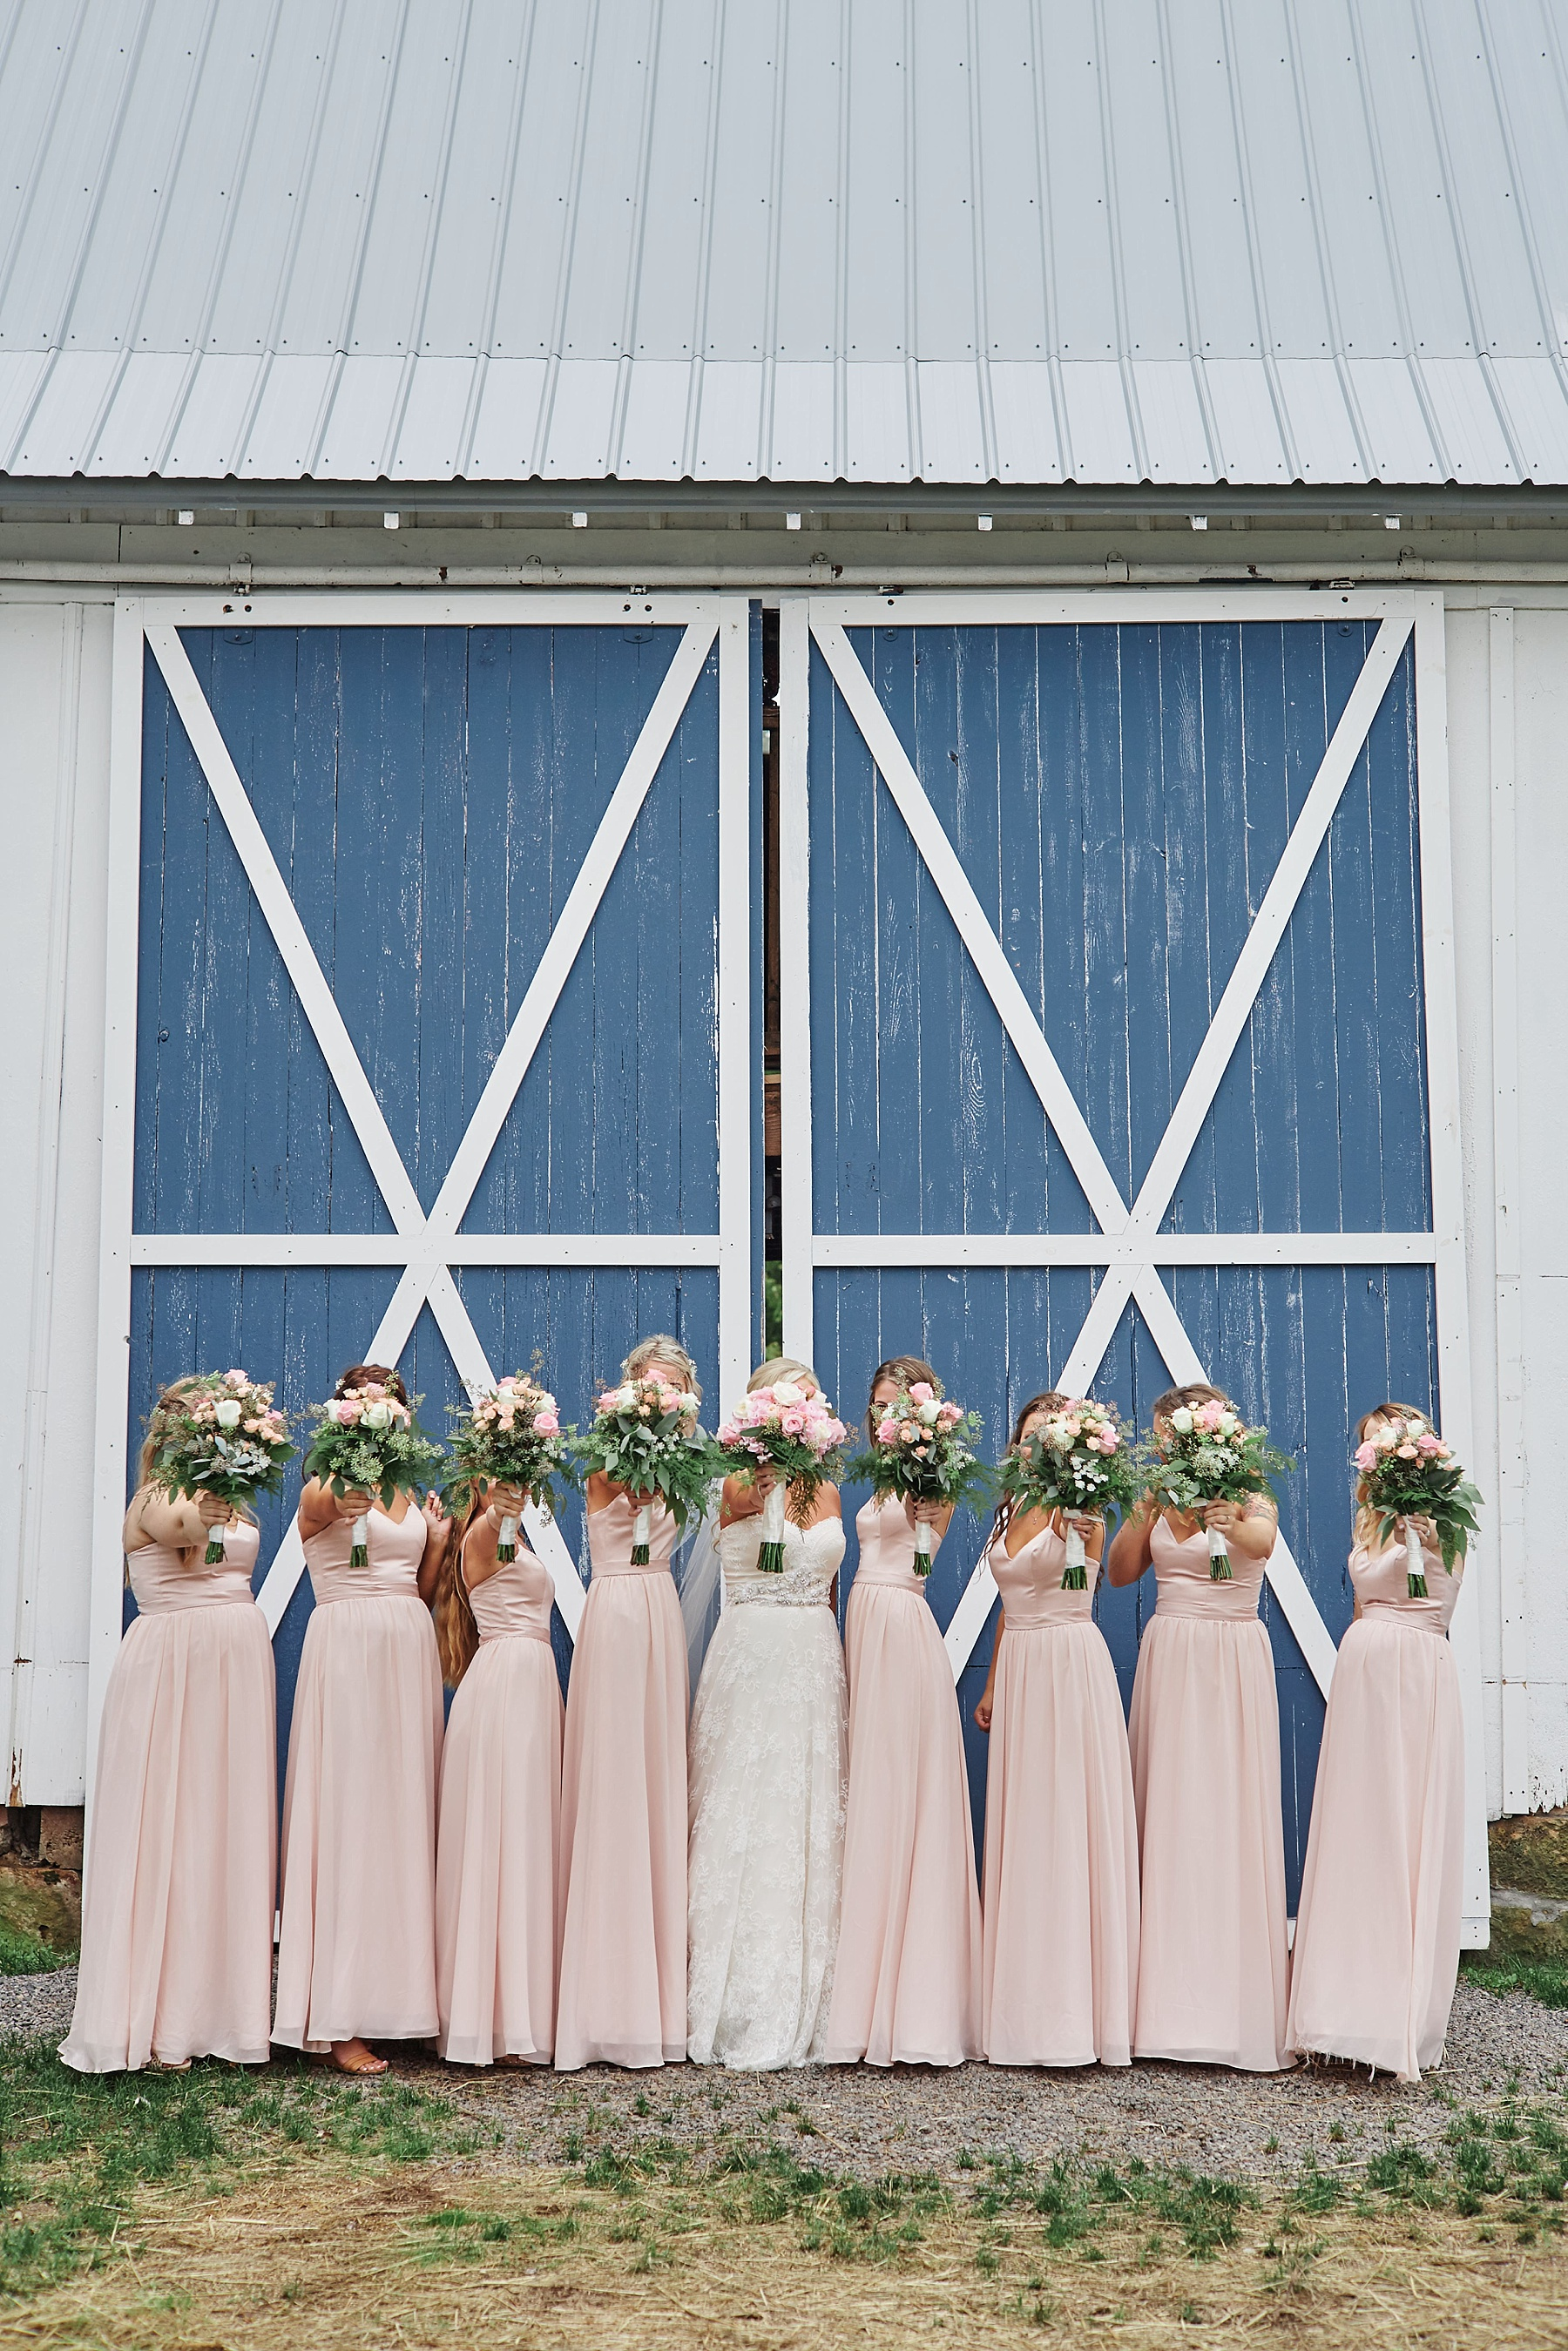 Bloom-Lake-Barn-Wedding-Schafer-Minnesota-Outdoor_0250.jpg